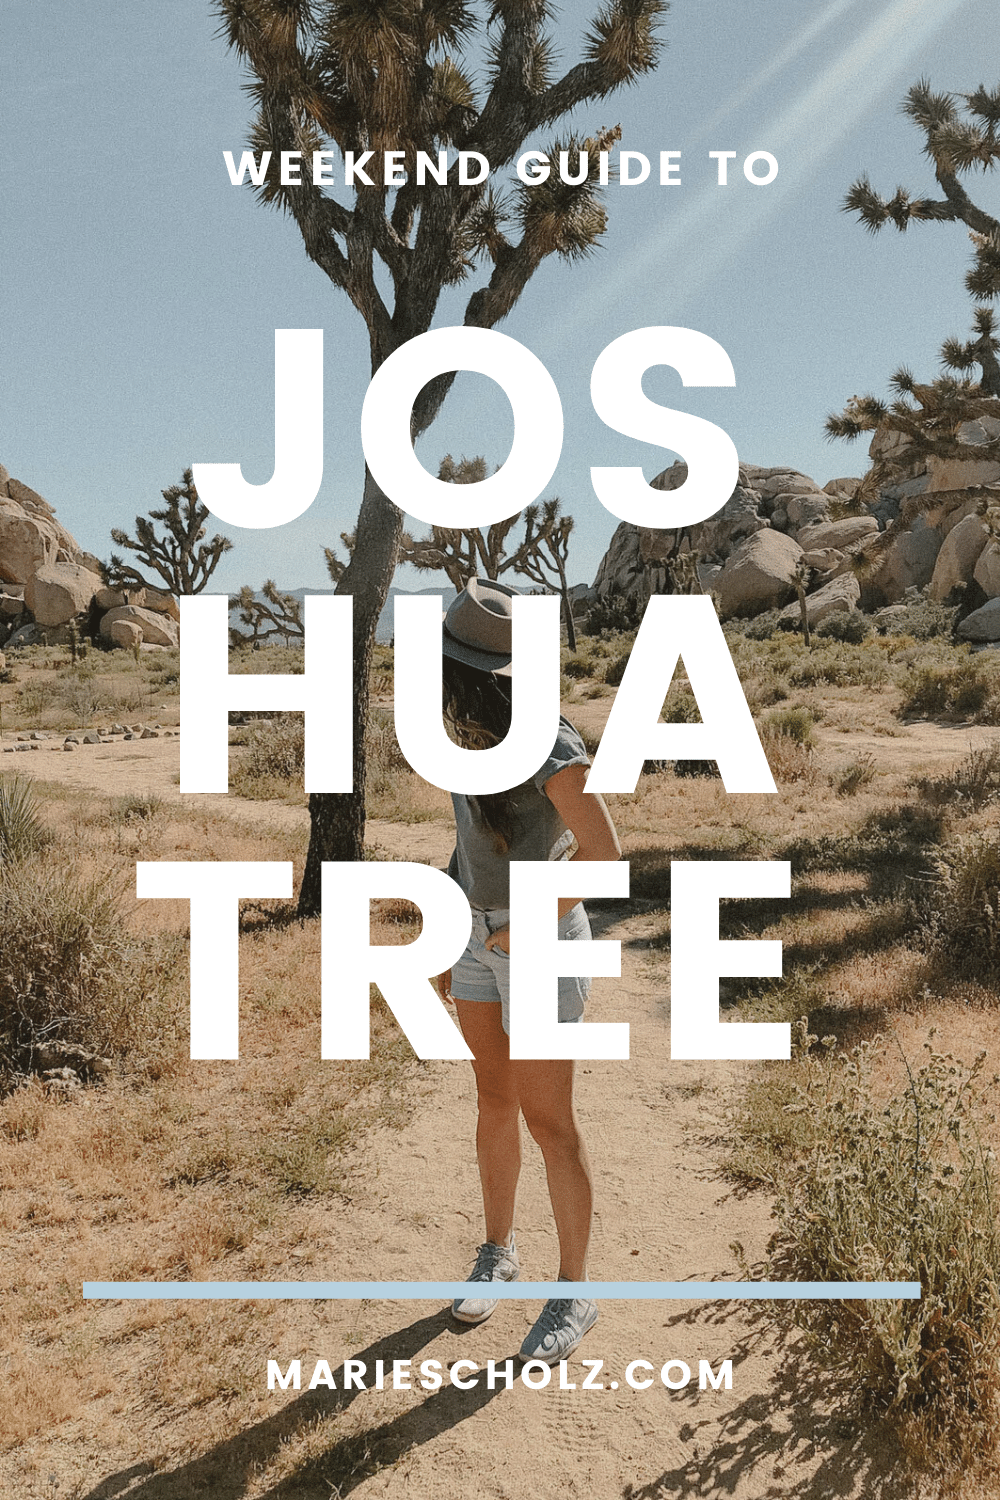 joshua tree weekend guide (1)